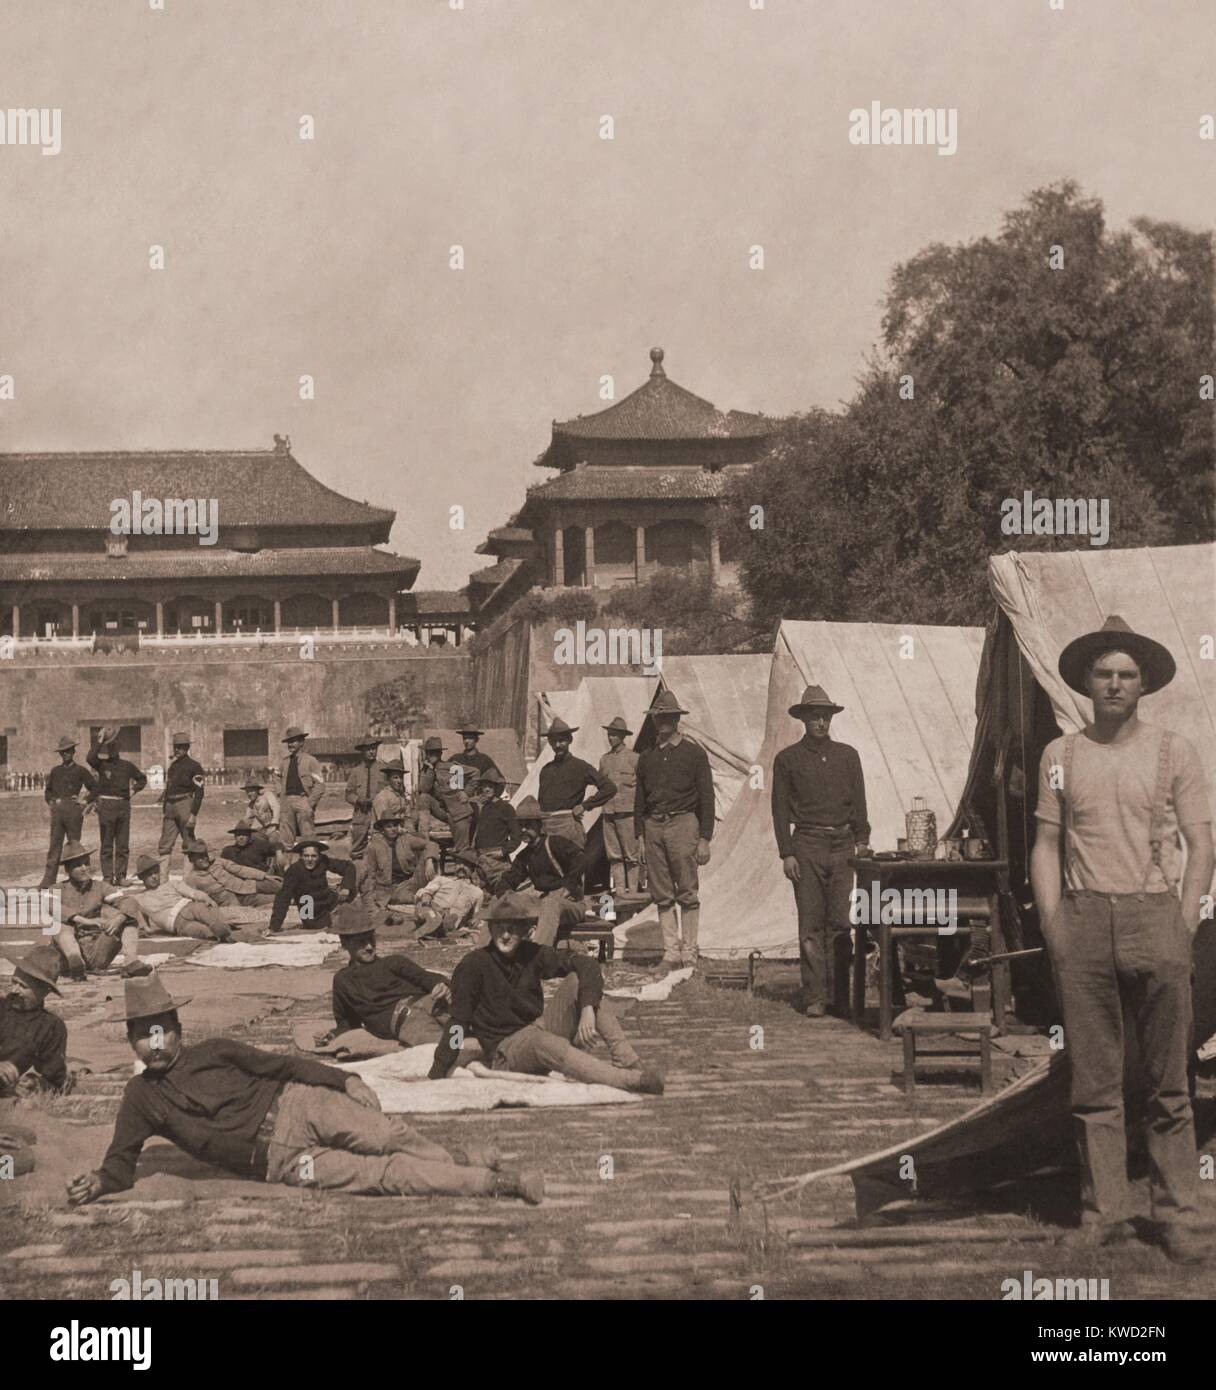 Ninth U.S. Infantry in Camp, in the court of the Forbidden City, Beijing, China, Aug.-Sept, 1900. The 9th Infantry - Stock Image